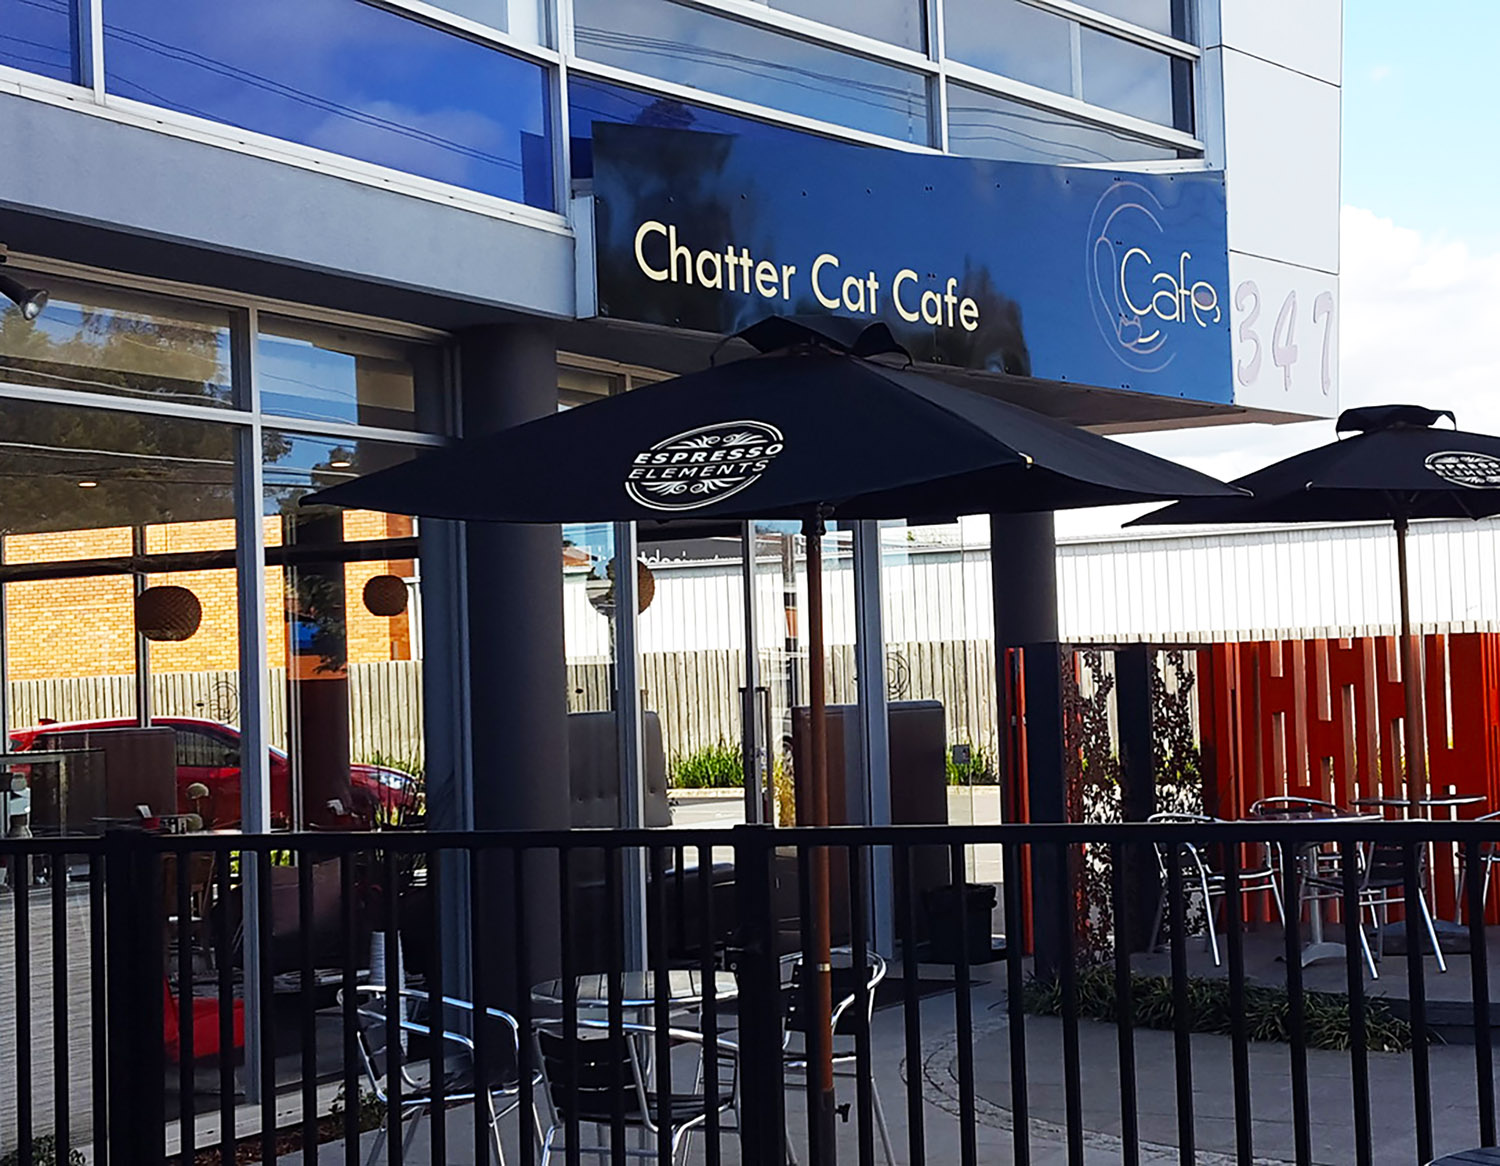 Chatter Cat Cafe